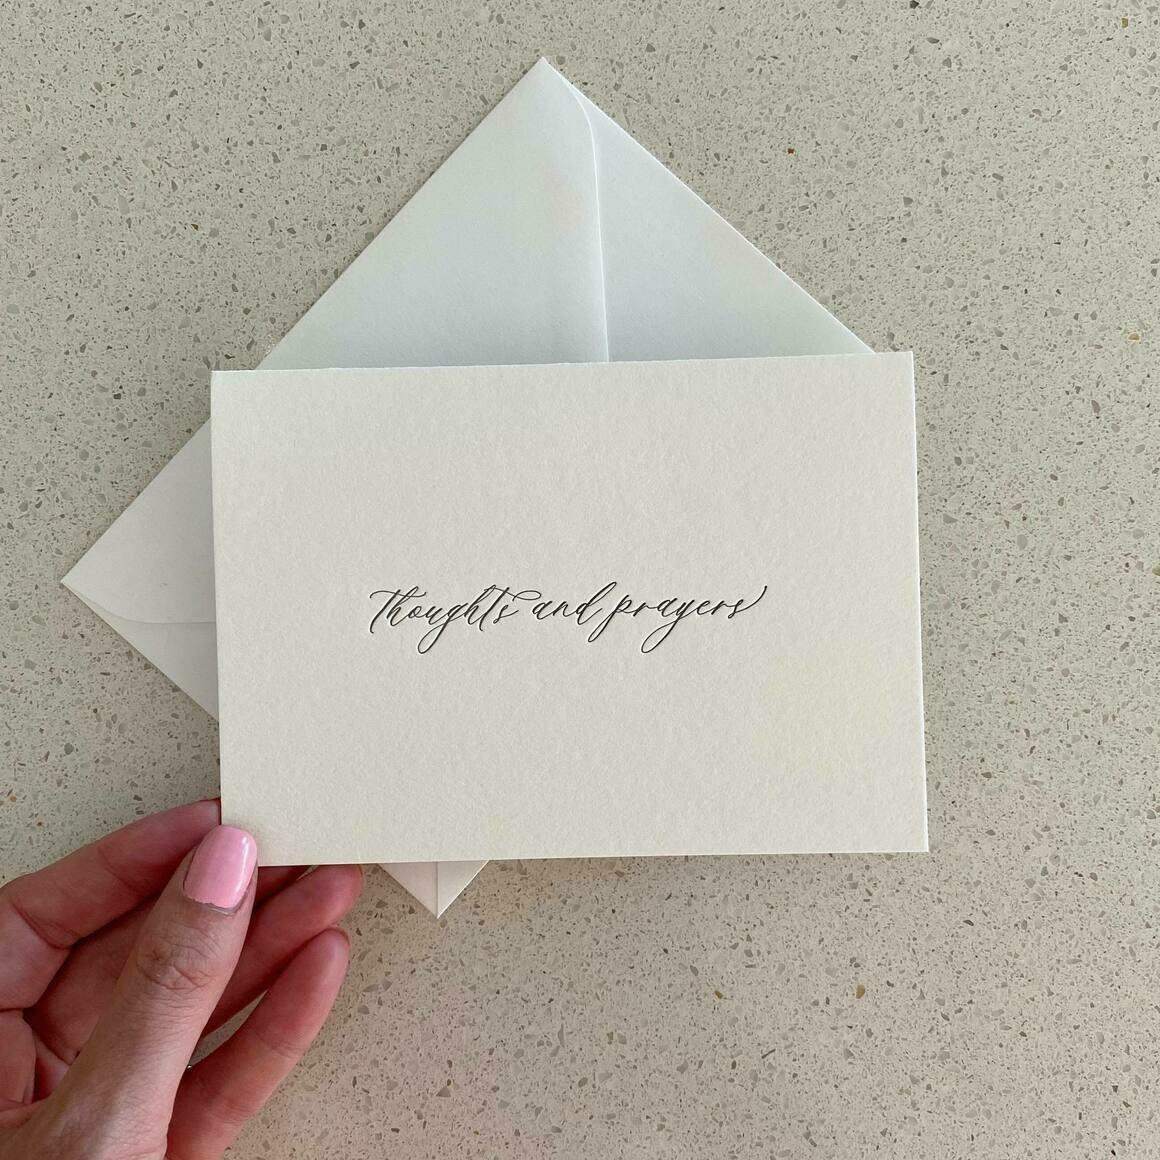 Thoughts and Prayers   Letterpress Greeting Card   Trada Marketplace